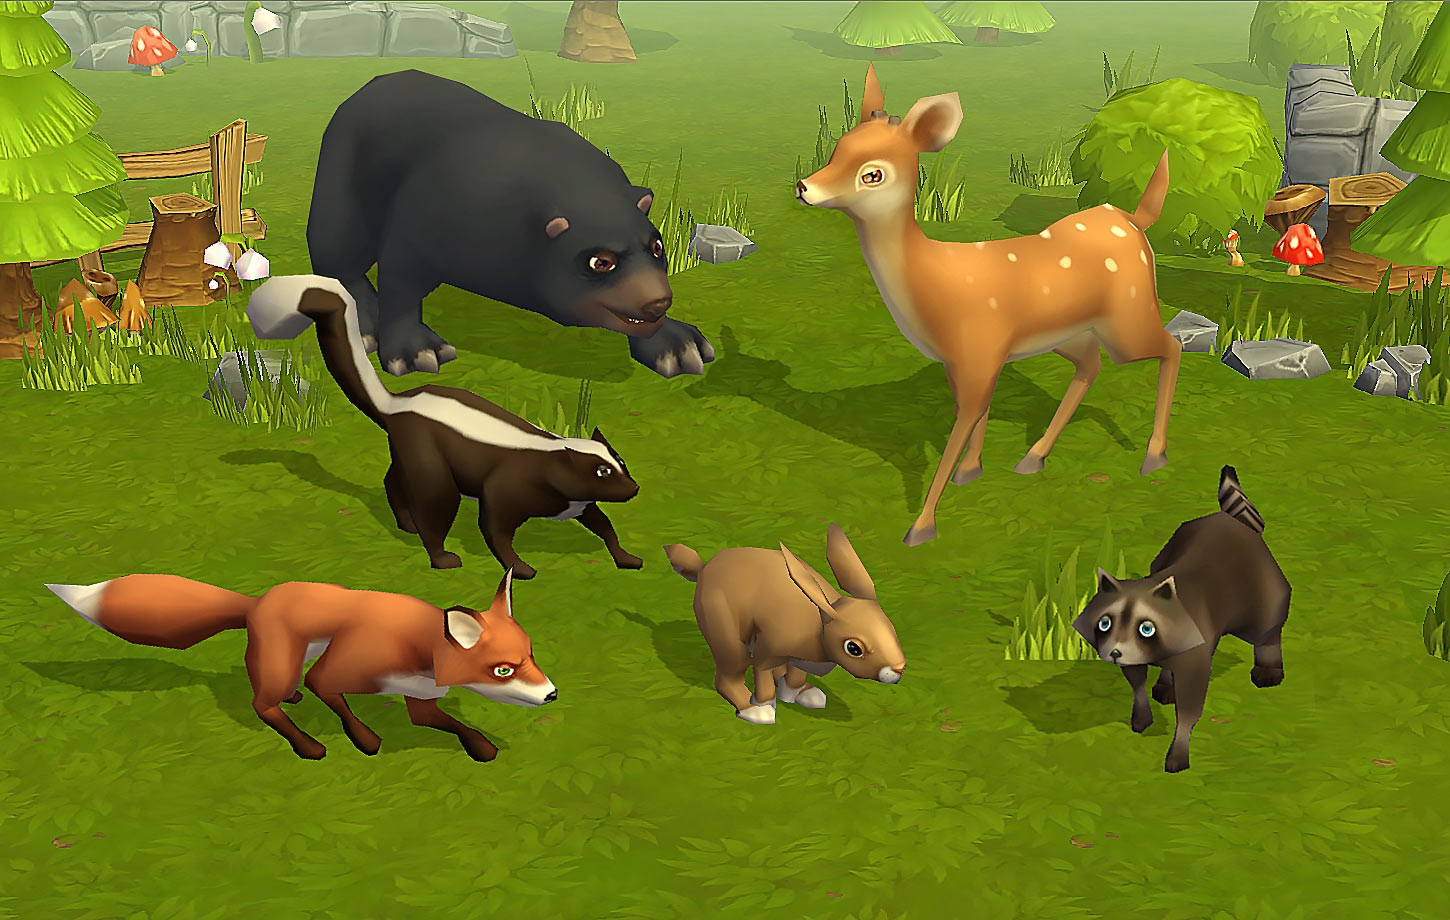 Animated Fantasy Wild Animals Pack